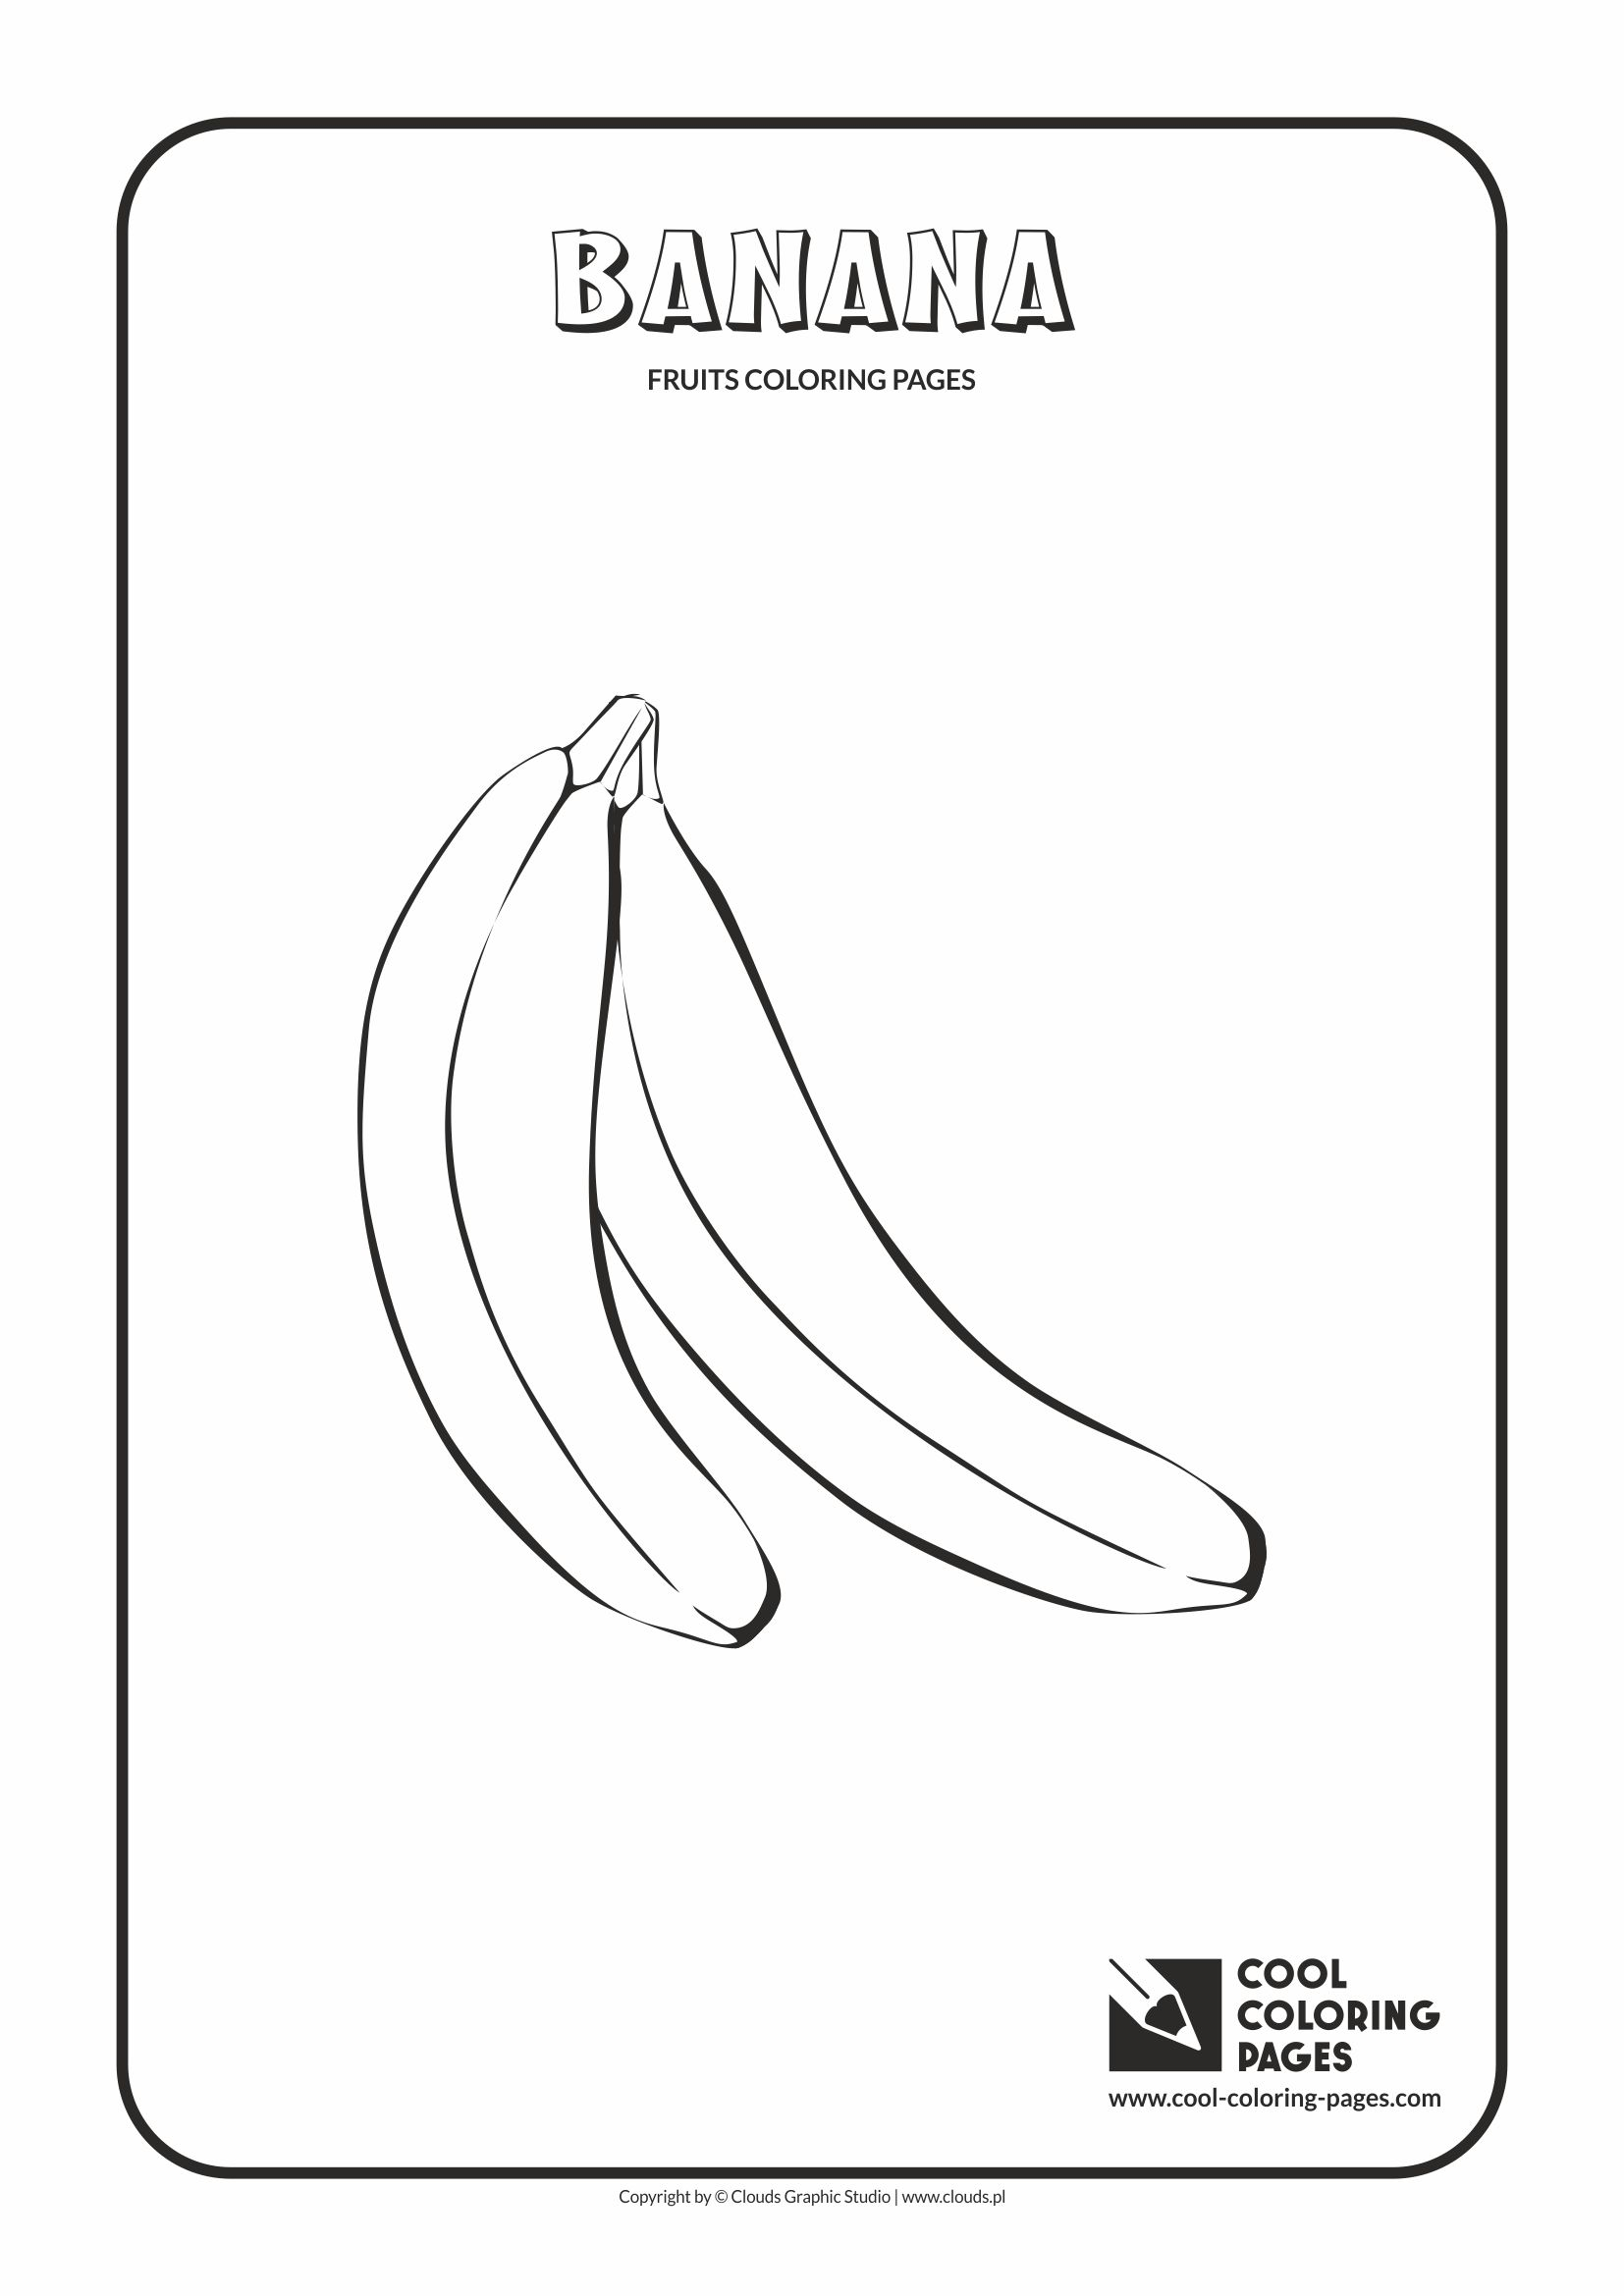 Cool Coloring Pages - Plants / Banana / Coloring page with banana